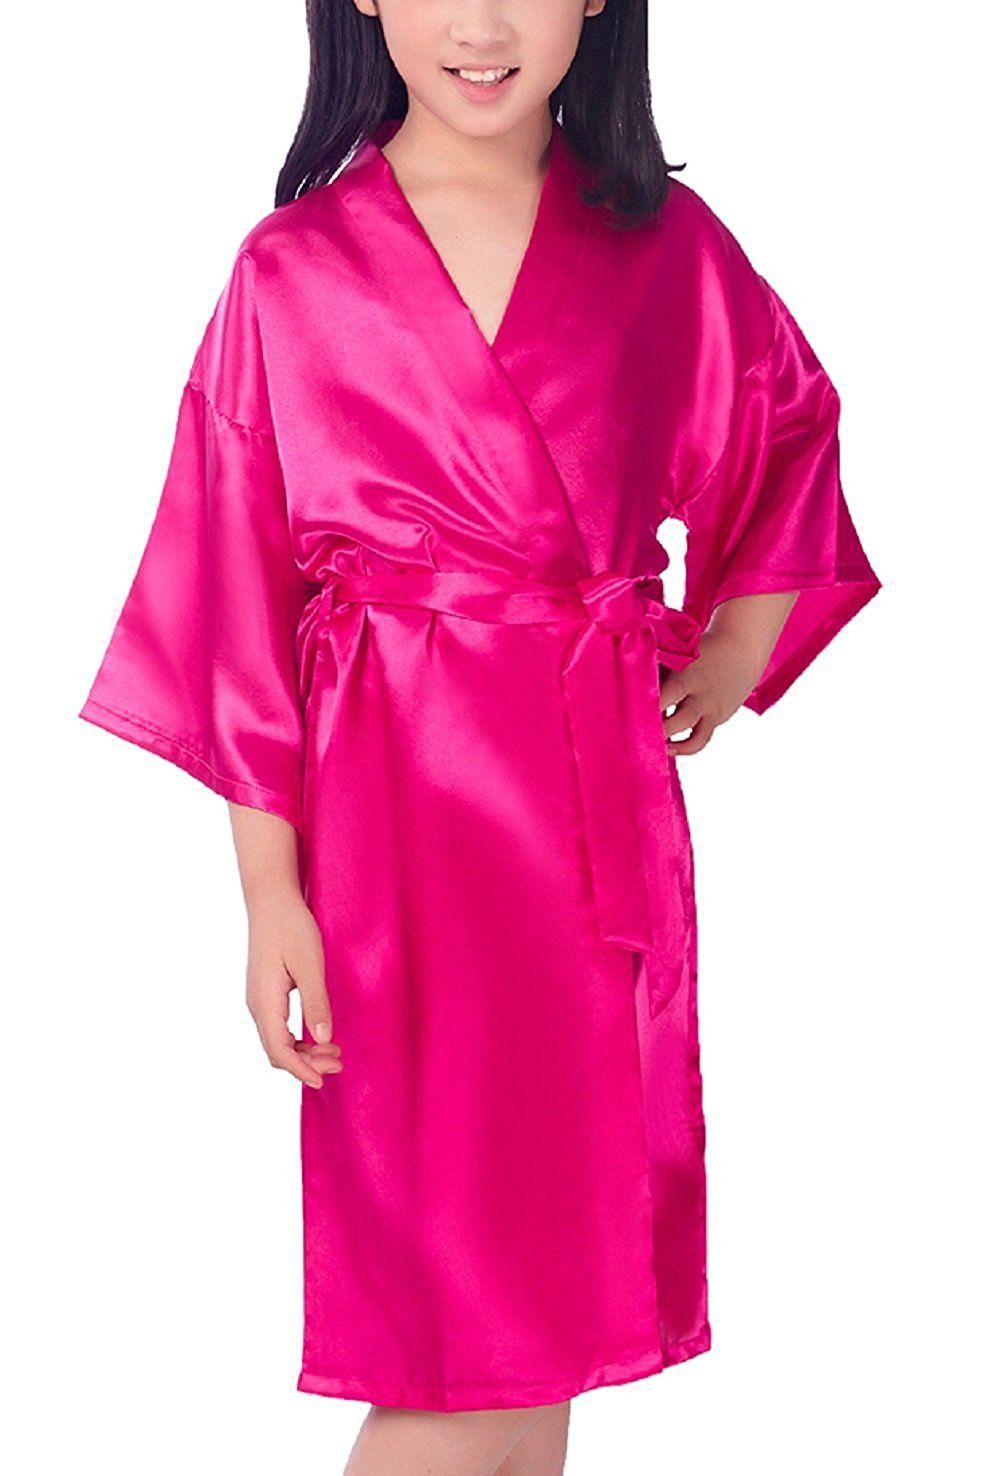 Hammia Girls Satin Kimono Robe Fashion Bathrobe Silk Nightgown for Spa Party Wedding Birthday Gift